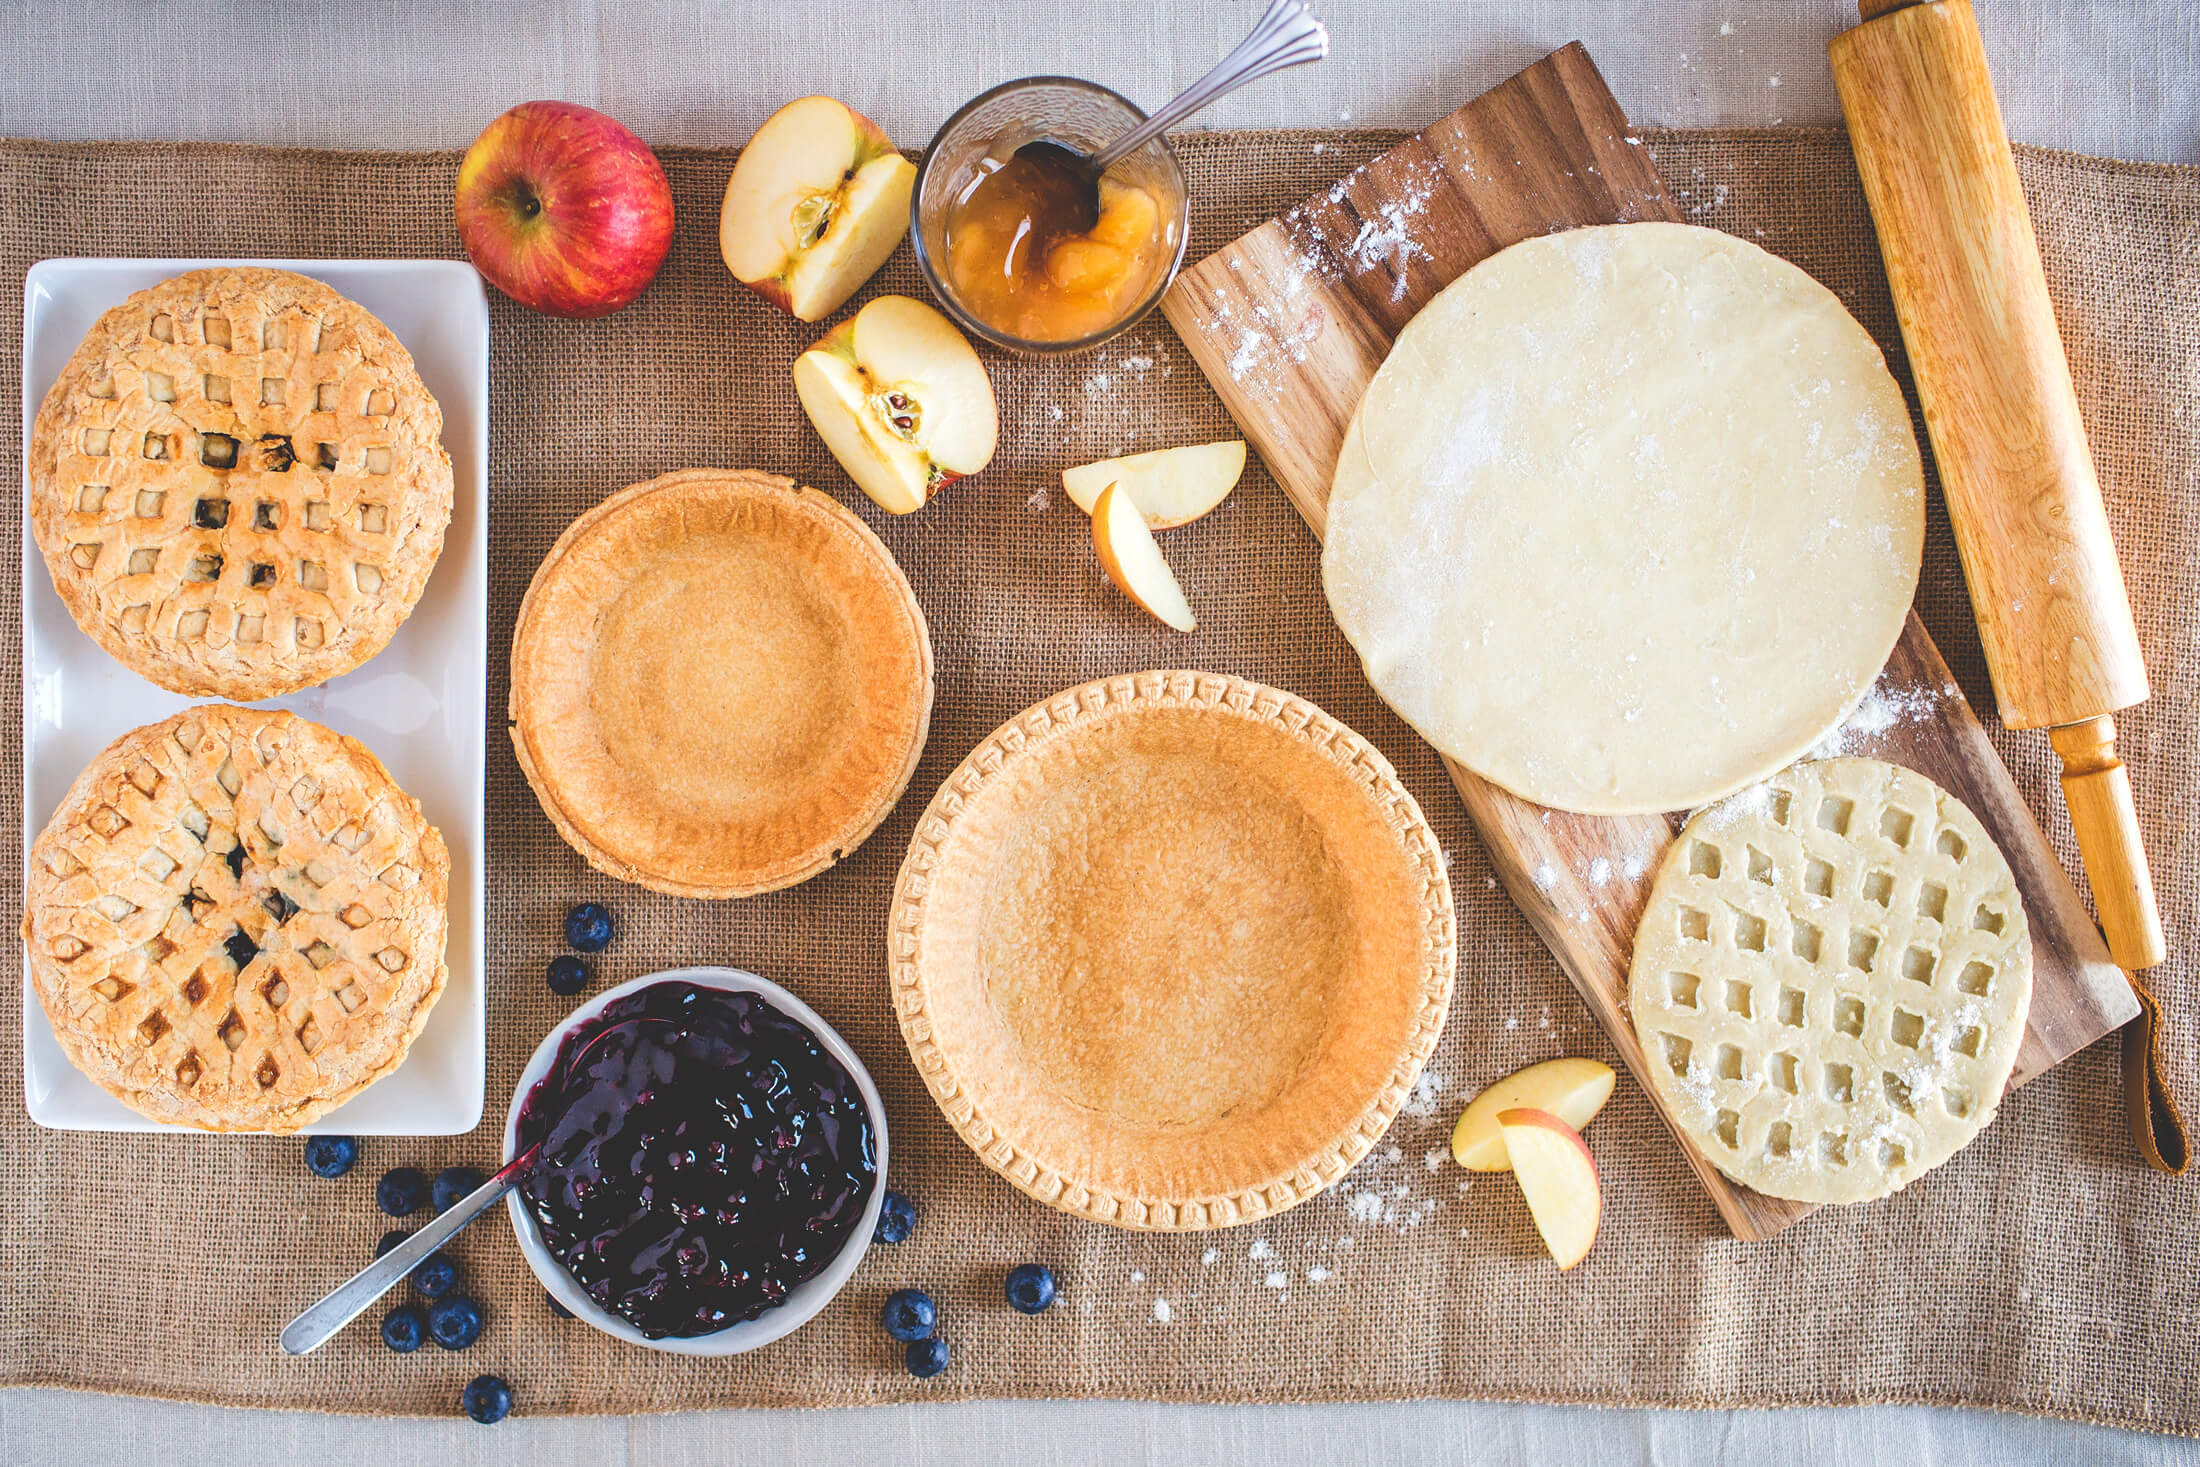 Boston Baking Pie Shells with Ingredients